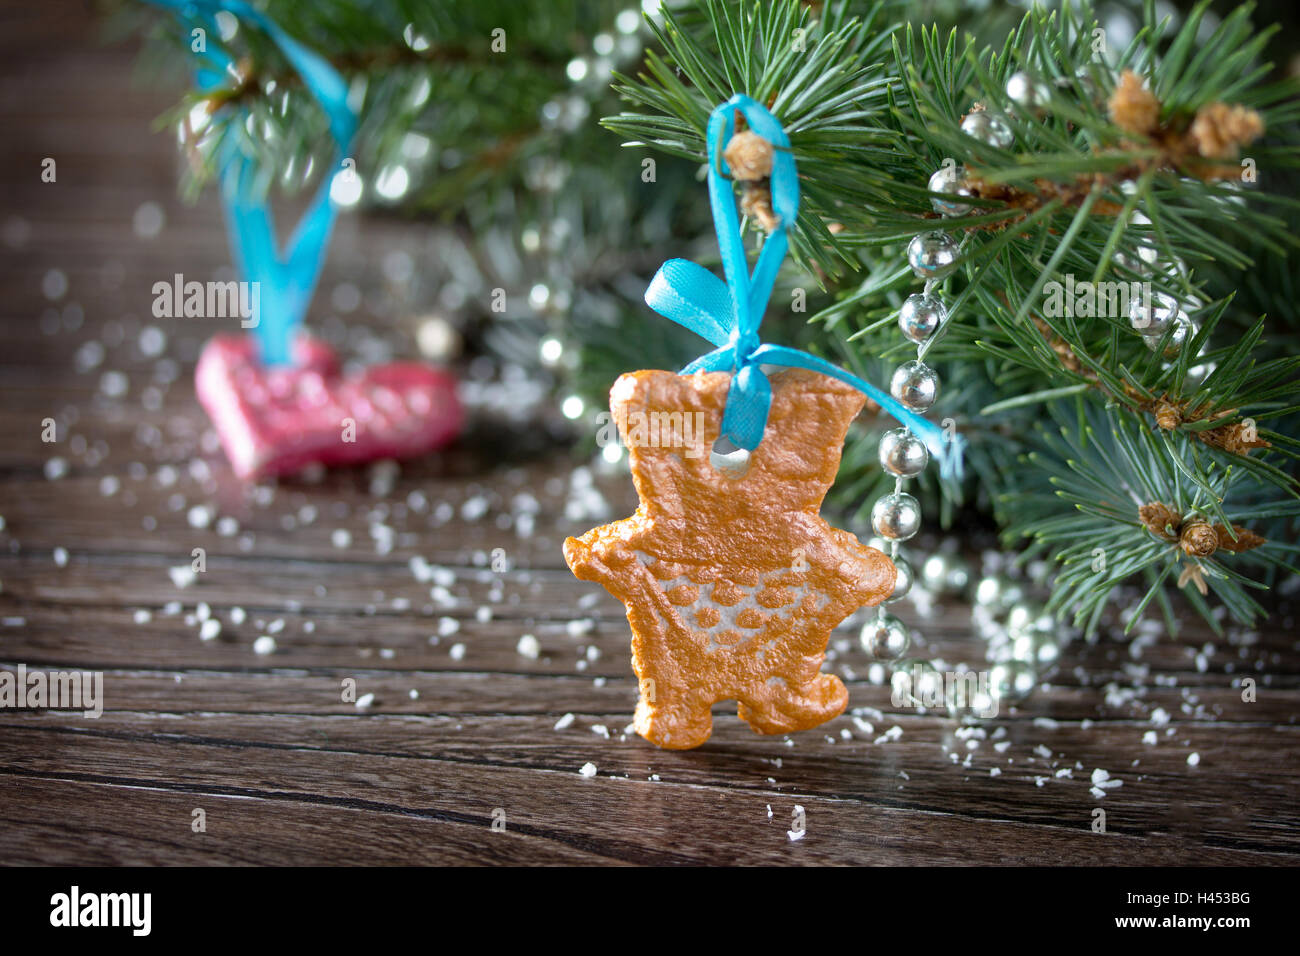 Christmas tree branches and Christmas toys made of of salt dough on wooden background. Stock Photo